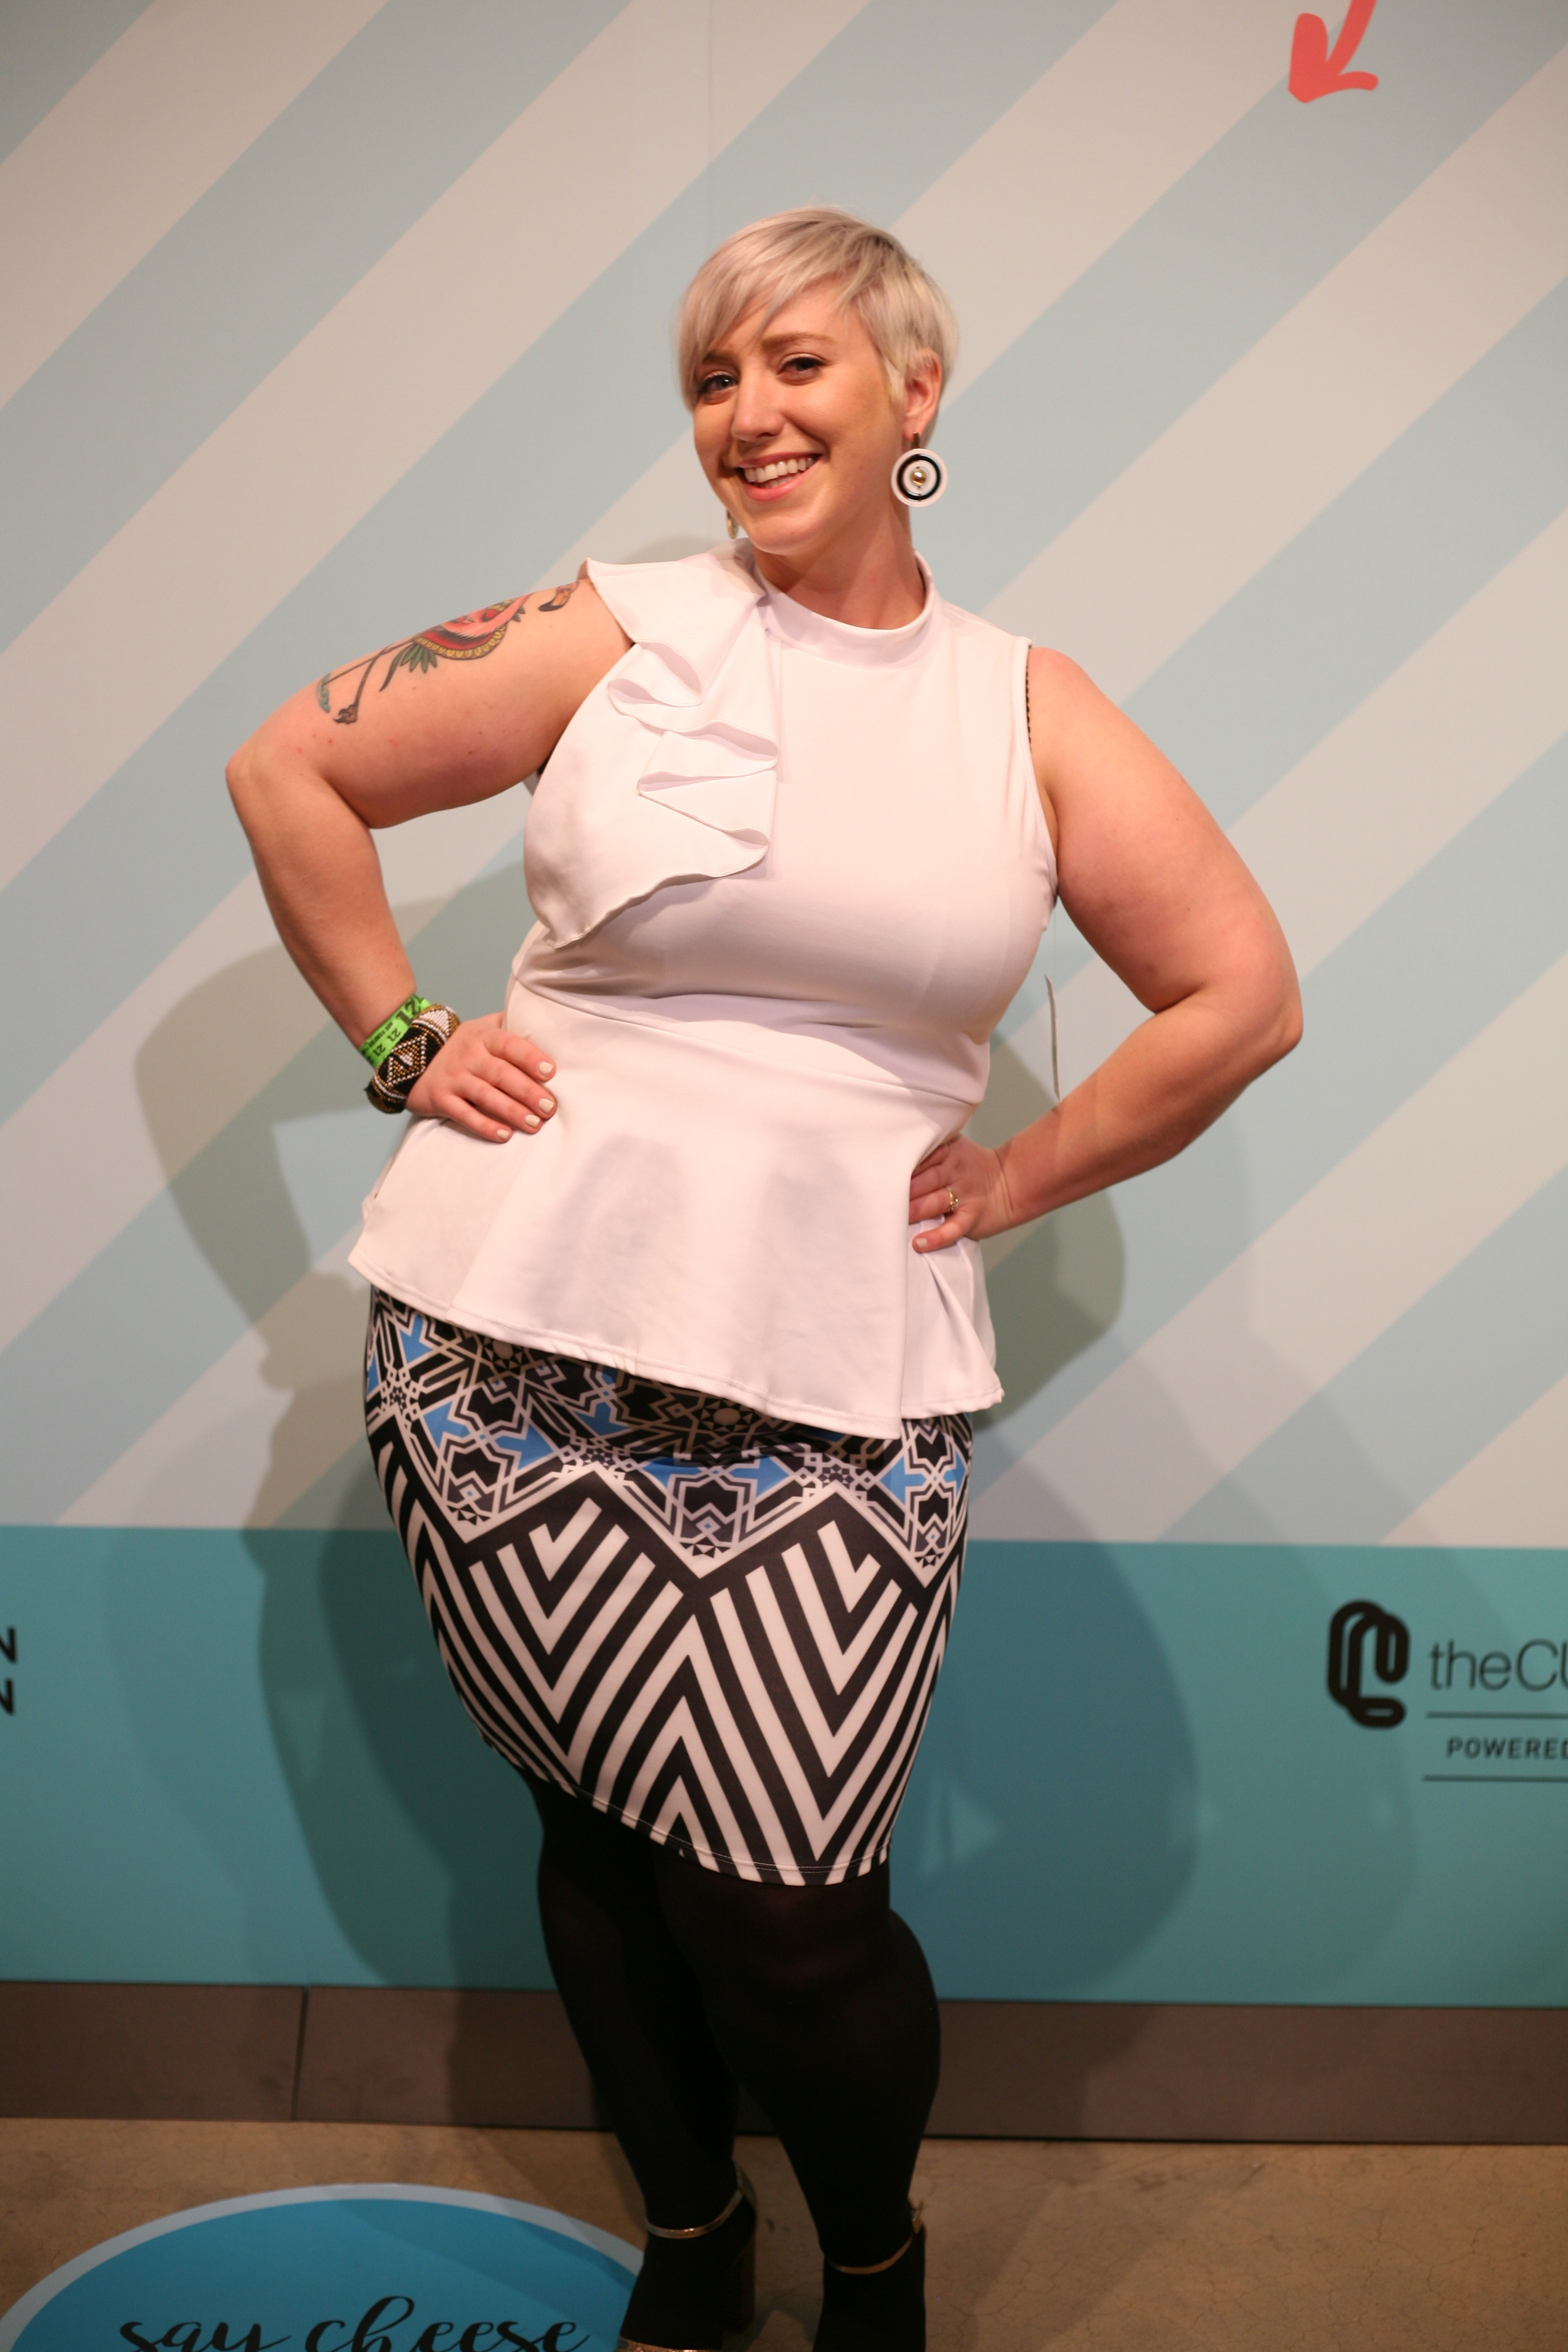 FTF Remi Ruffle Neck Peplum Top in White ;  FTF Mellie Tile Print Pencil Skirt  - $32.90 each, available in sizes 0X - 3X